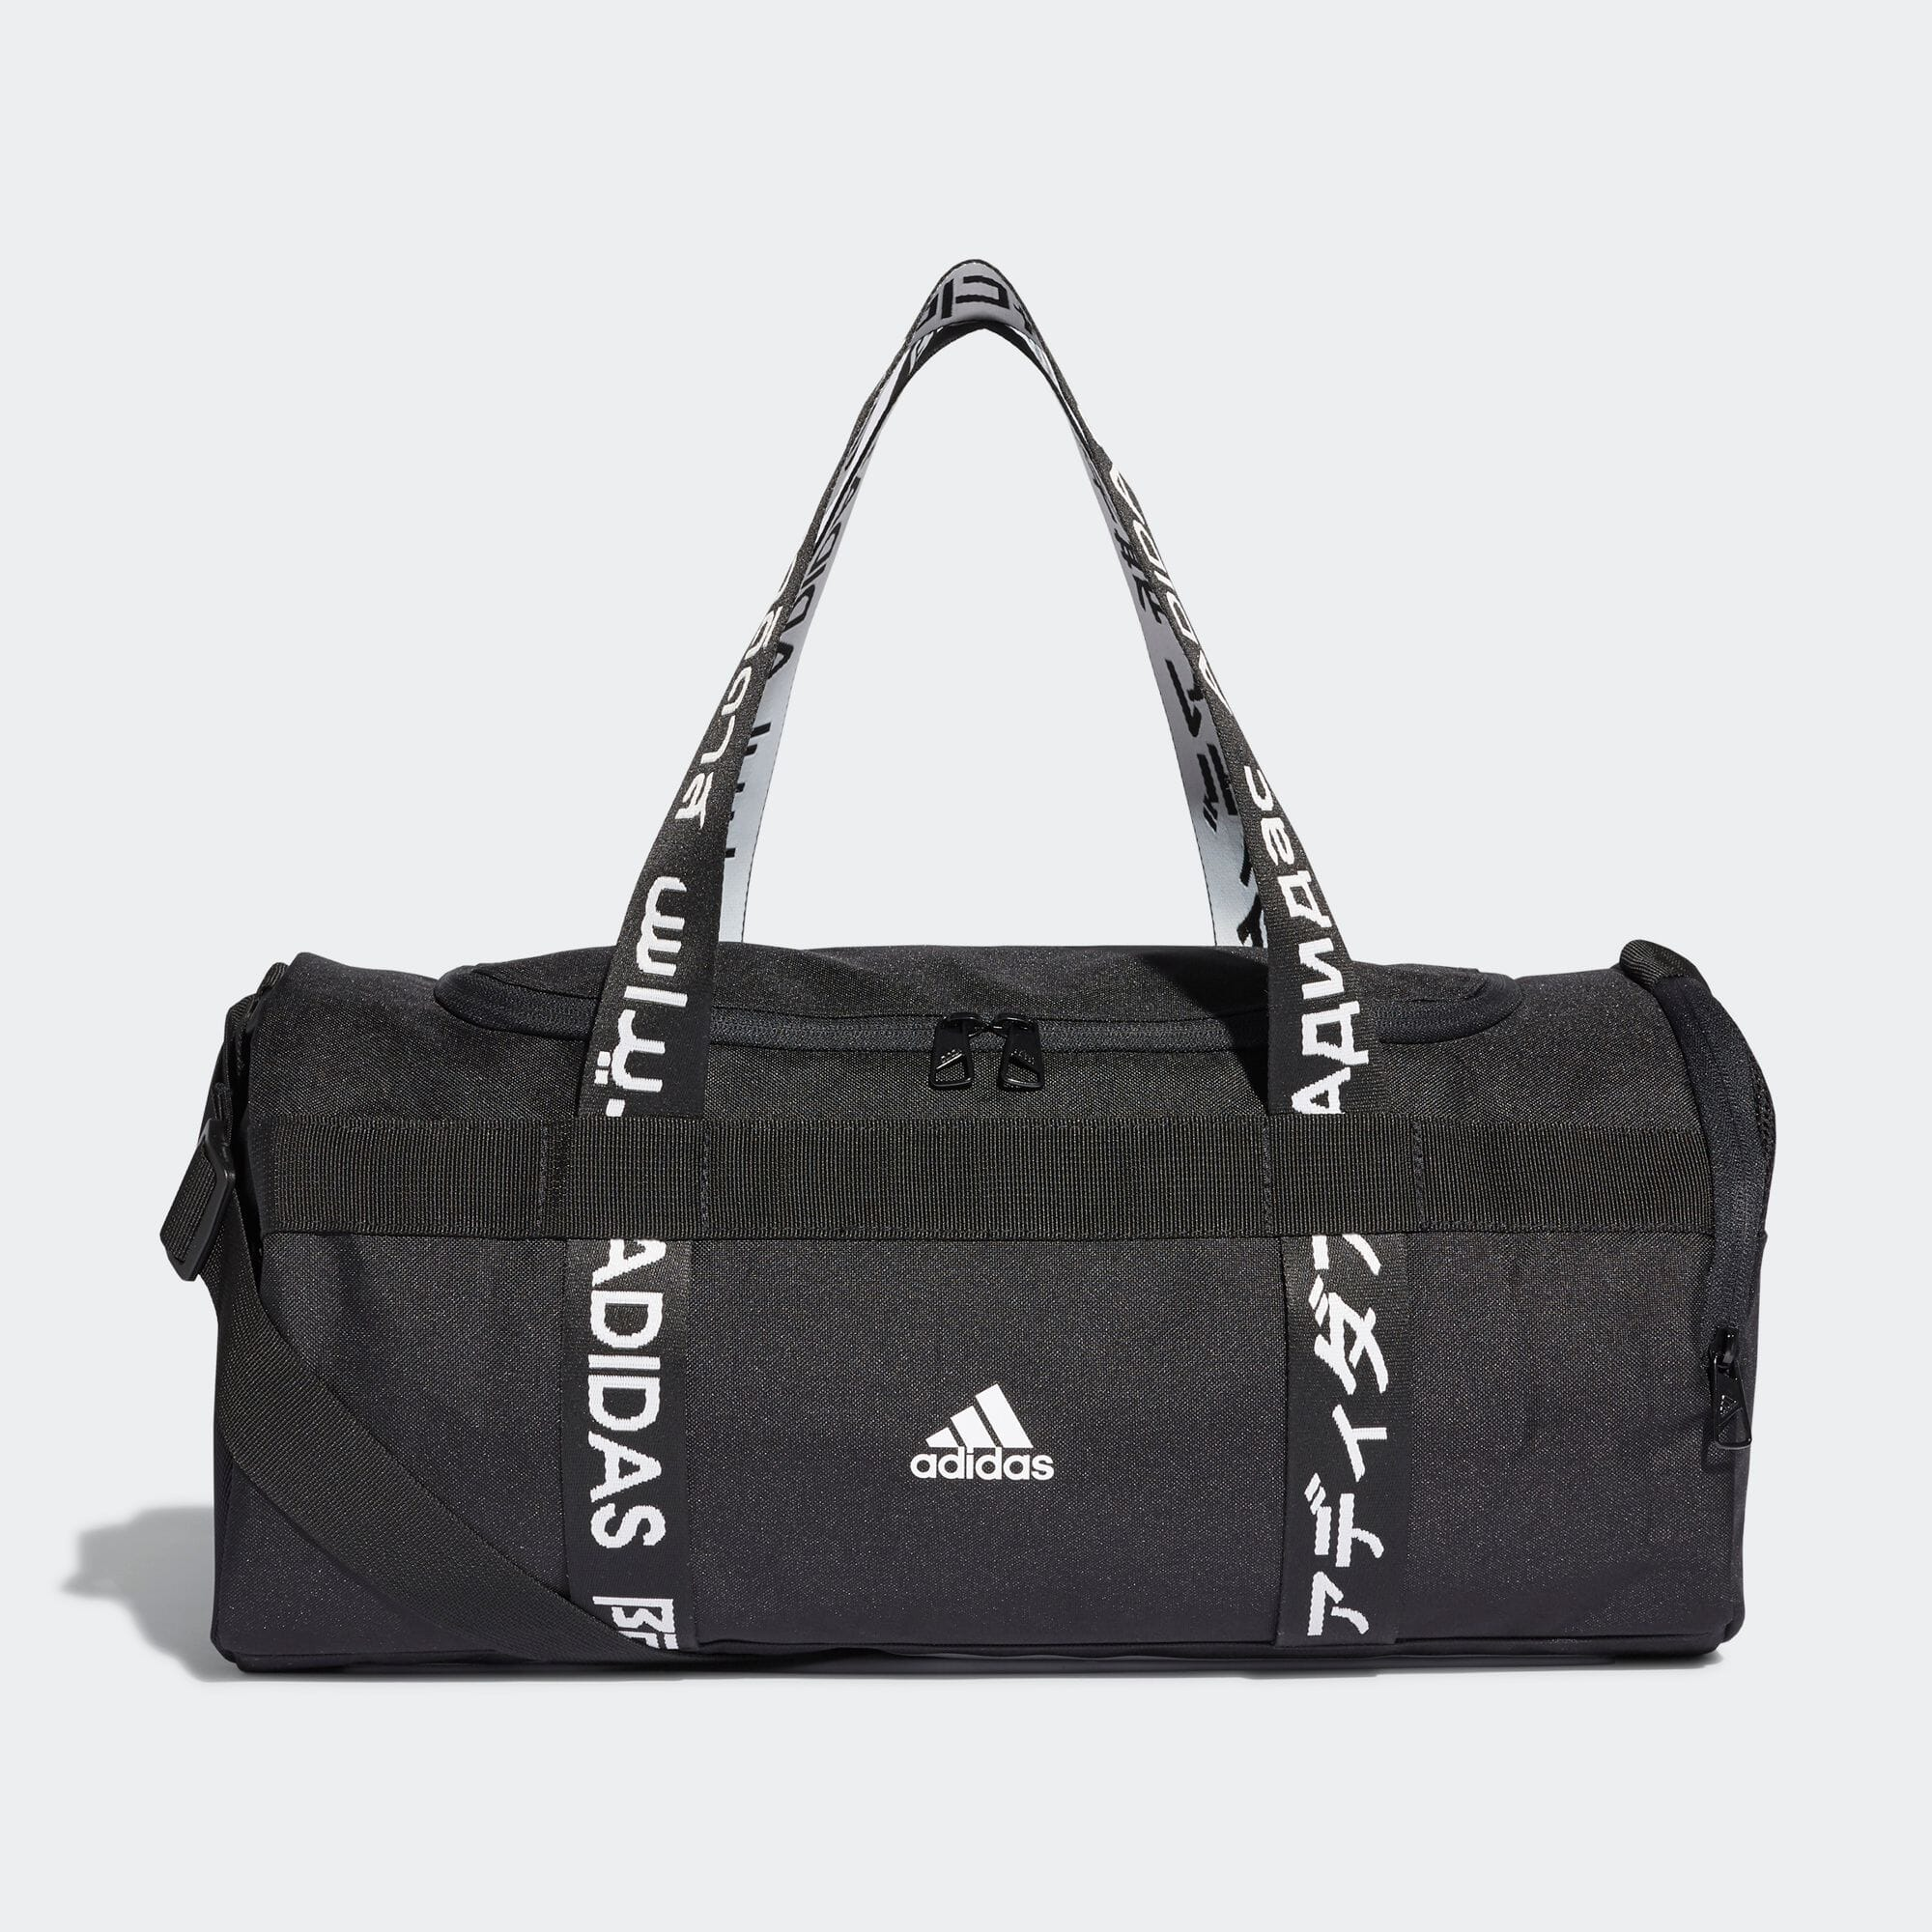 4ATHLTS ダッフルバッグ S / 4ATHLTS Duffel Bag Small